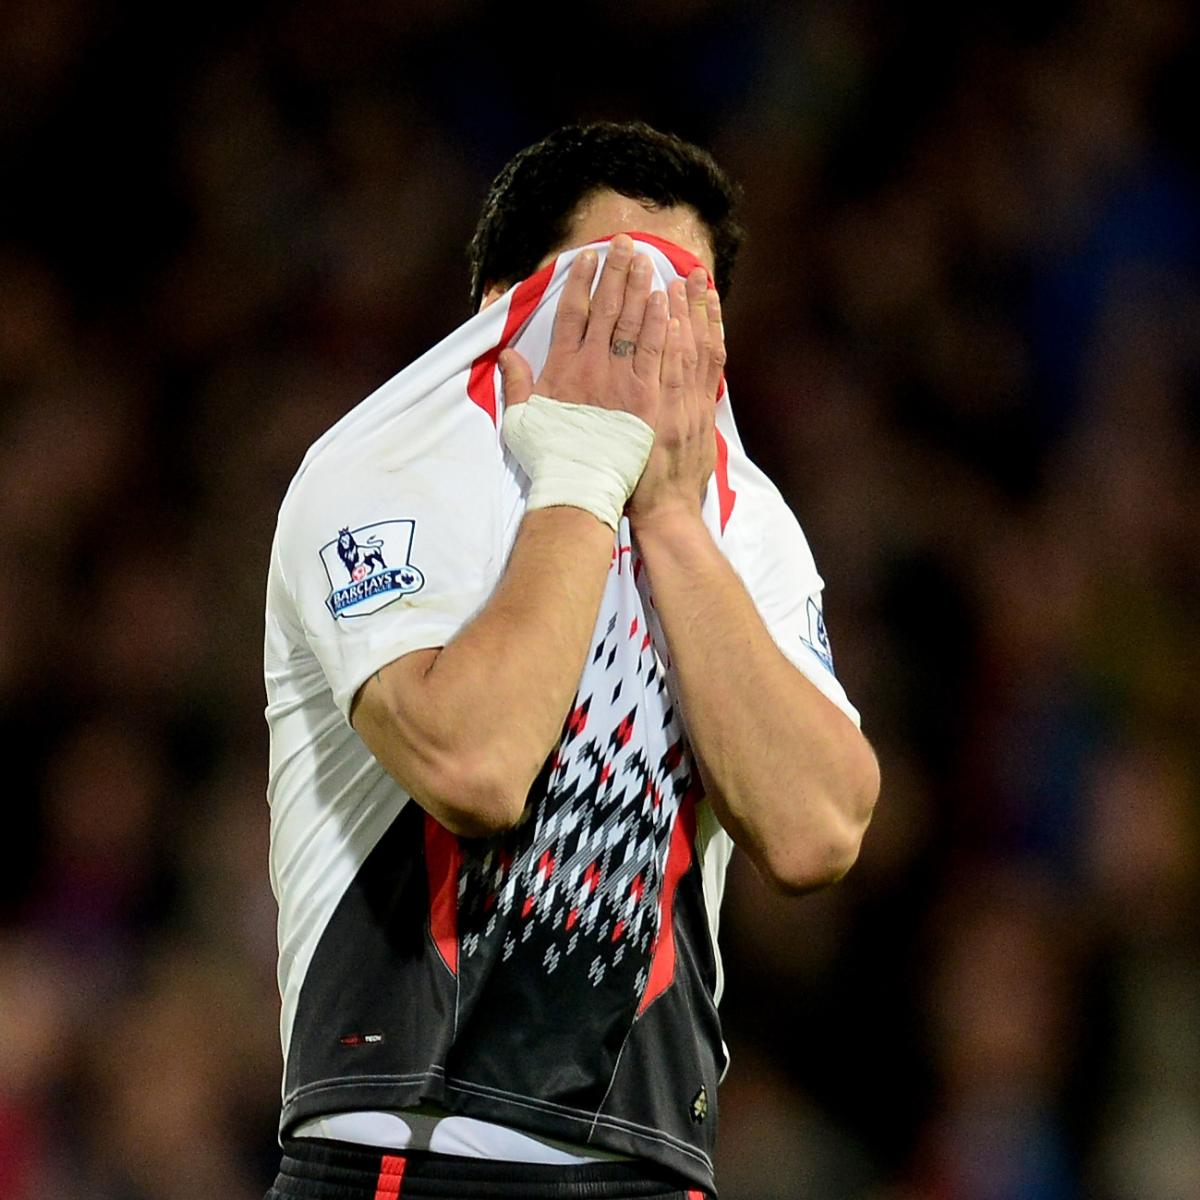 Luis Suarez And Steven Gerrard Reunited: Crying Luis Suarez Consoled By Steven Gerrard After Shock